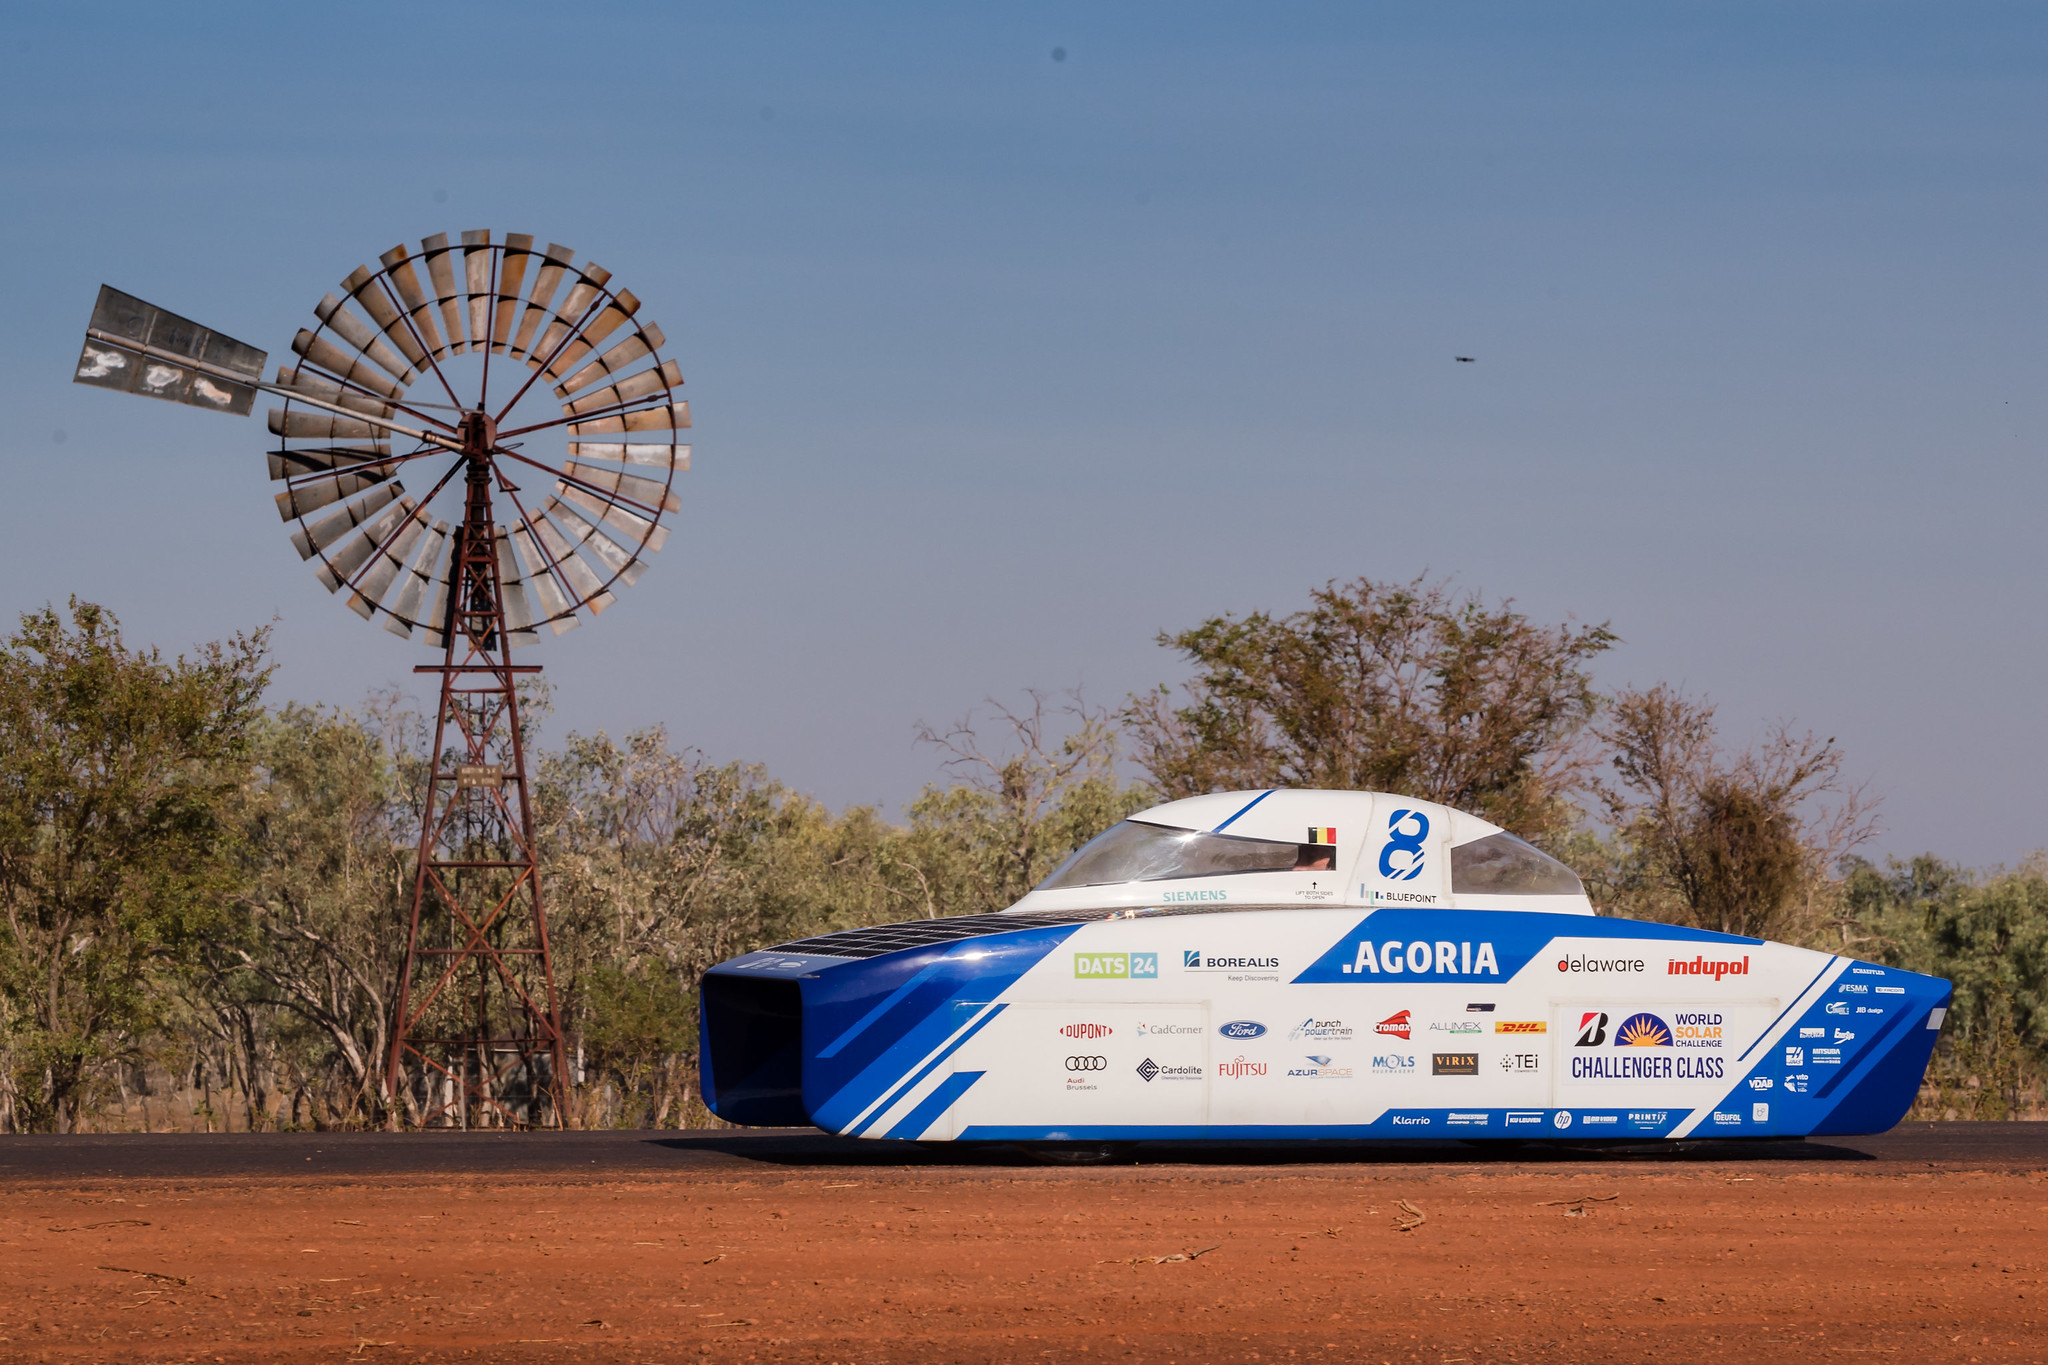 cx-agoria-solar-team-bluepoint-wins-world-solar-challenge_1